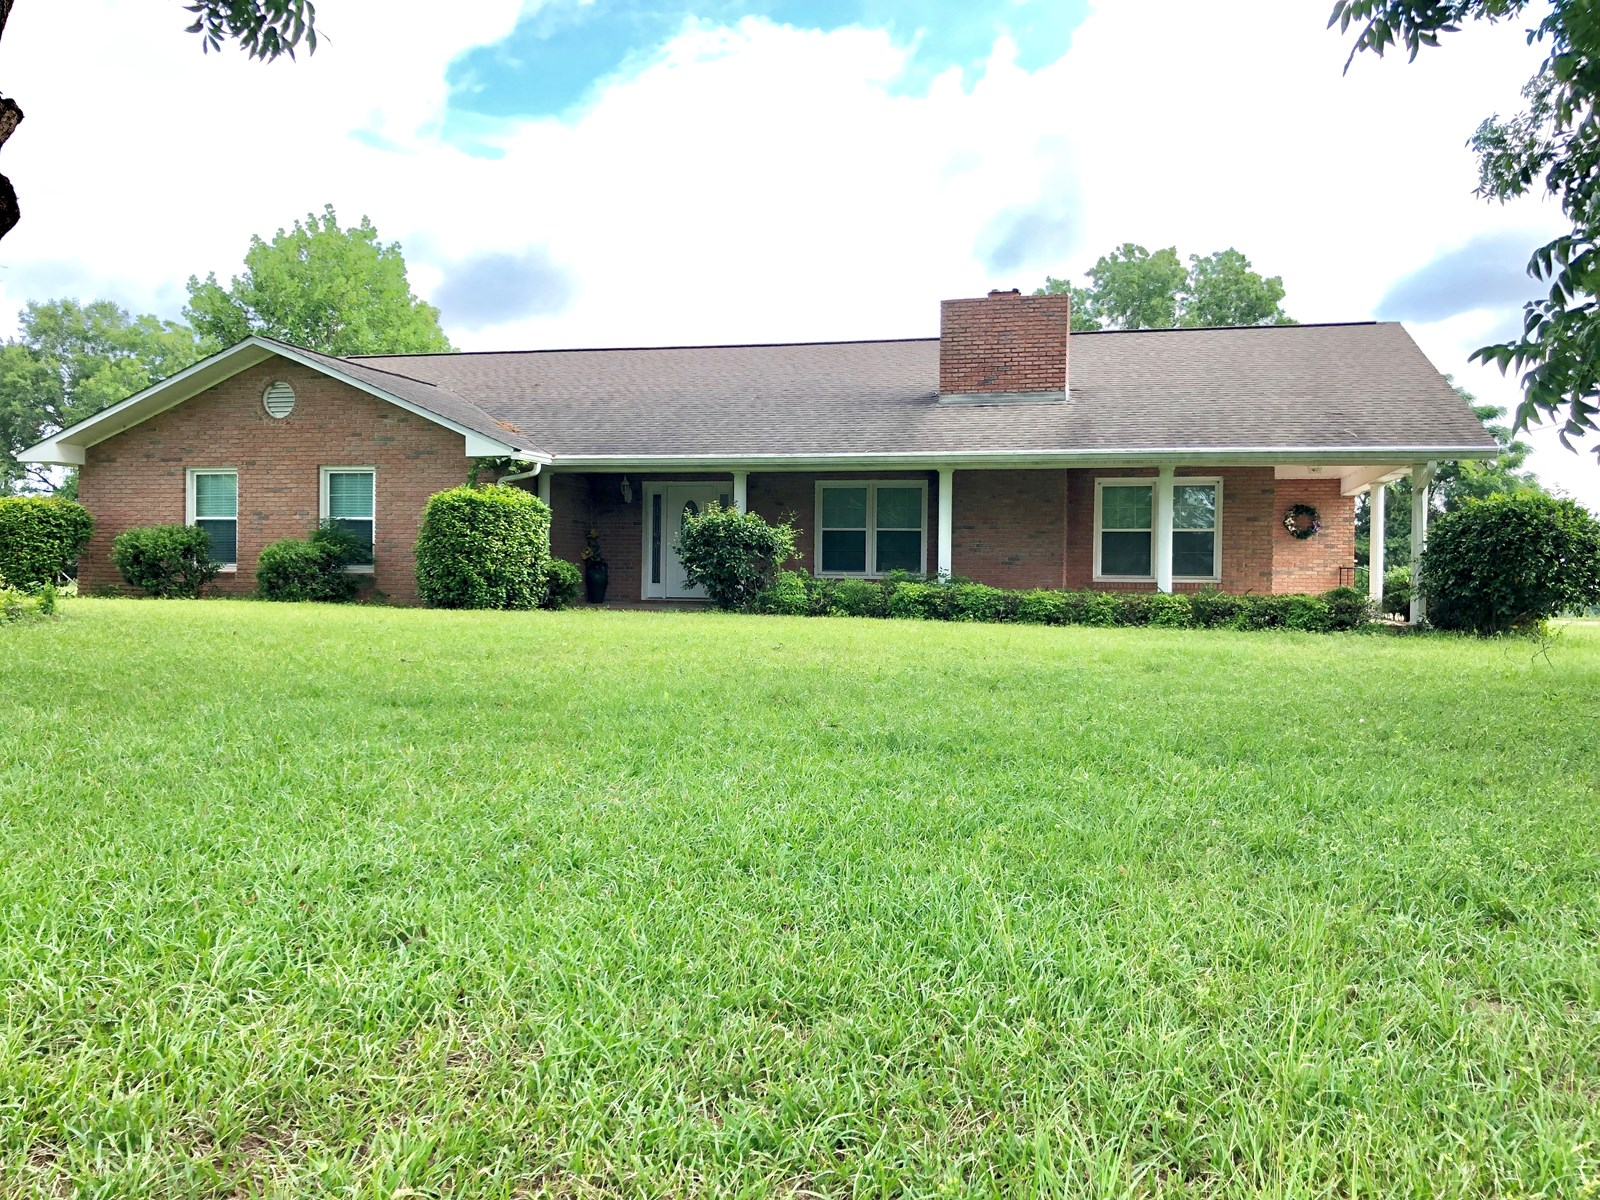 3B/3B BRICK HOME FOR SALE IN BLACK, ALABAMA